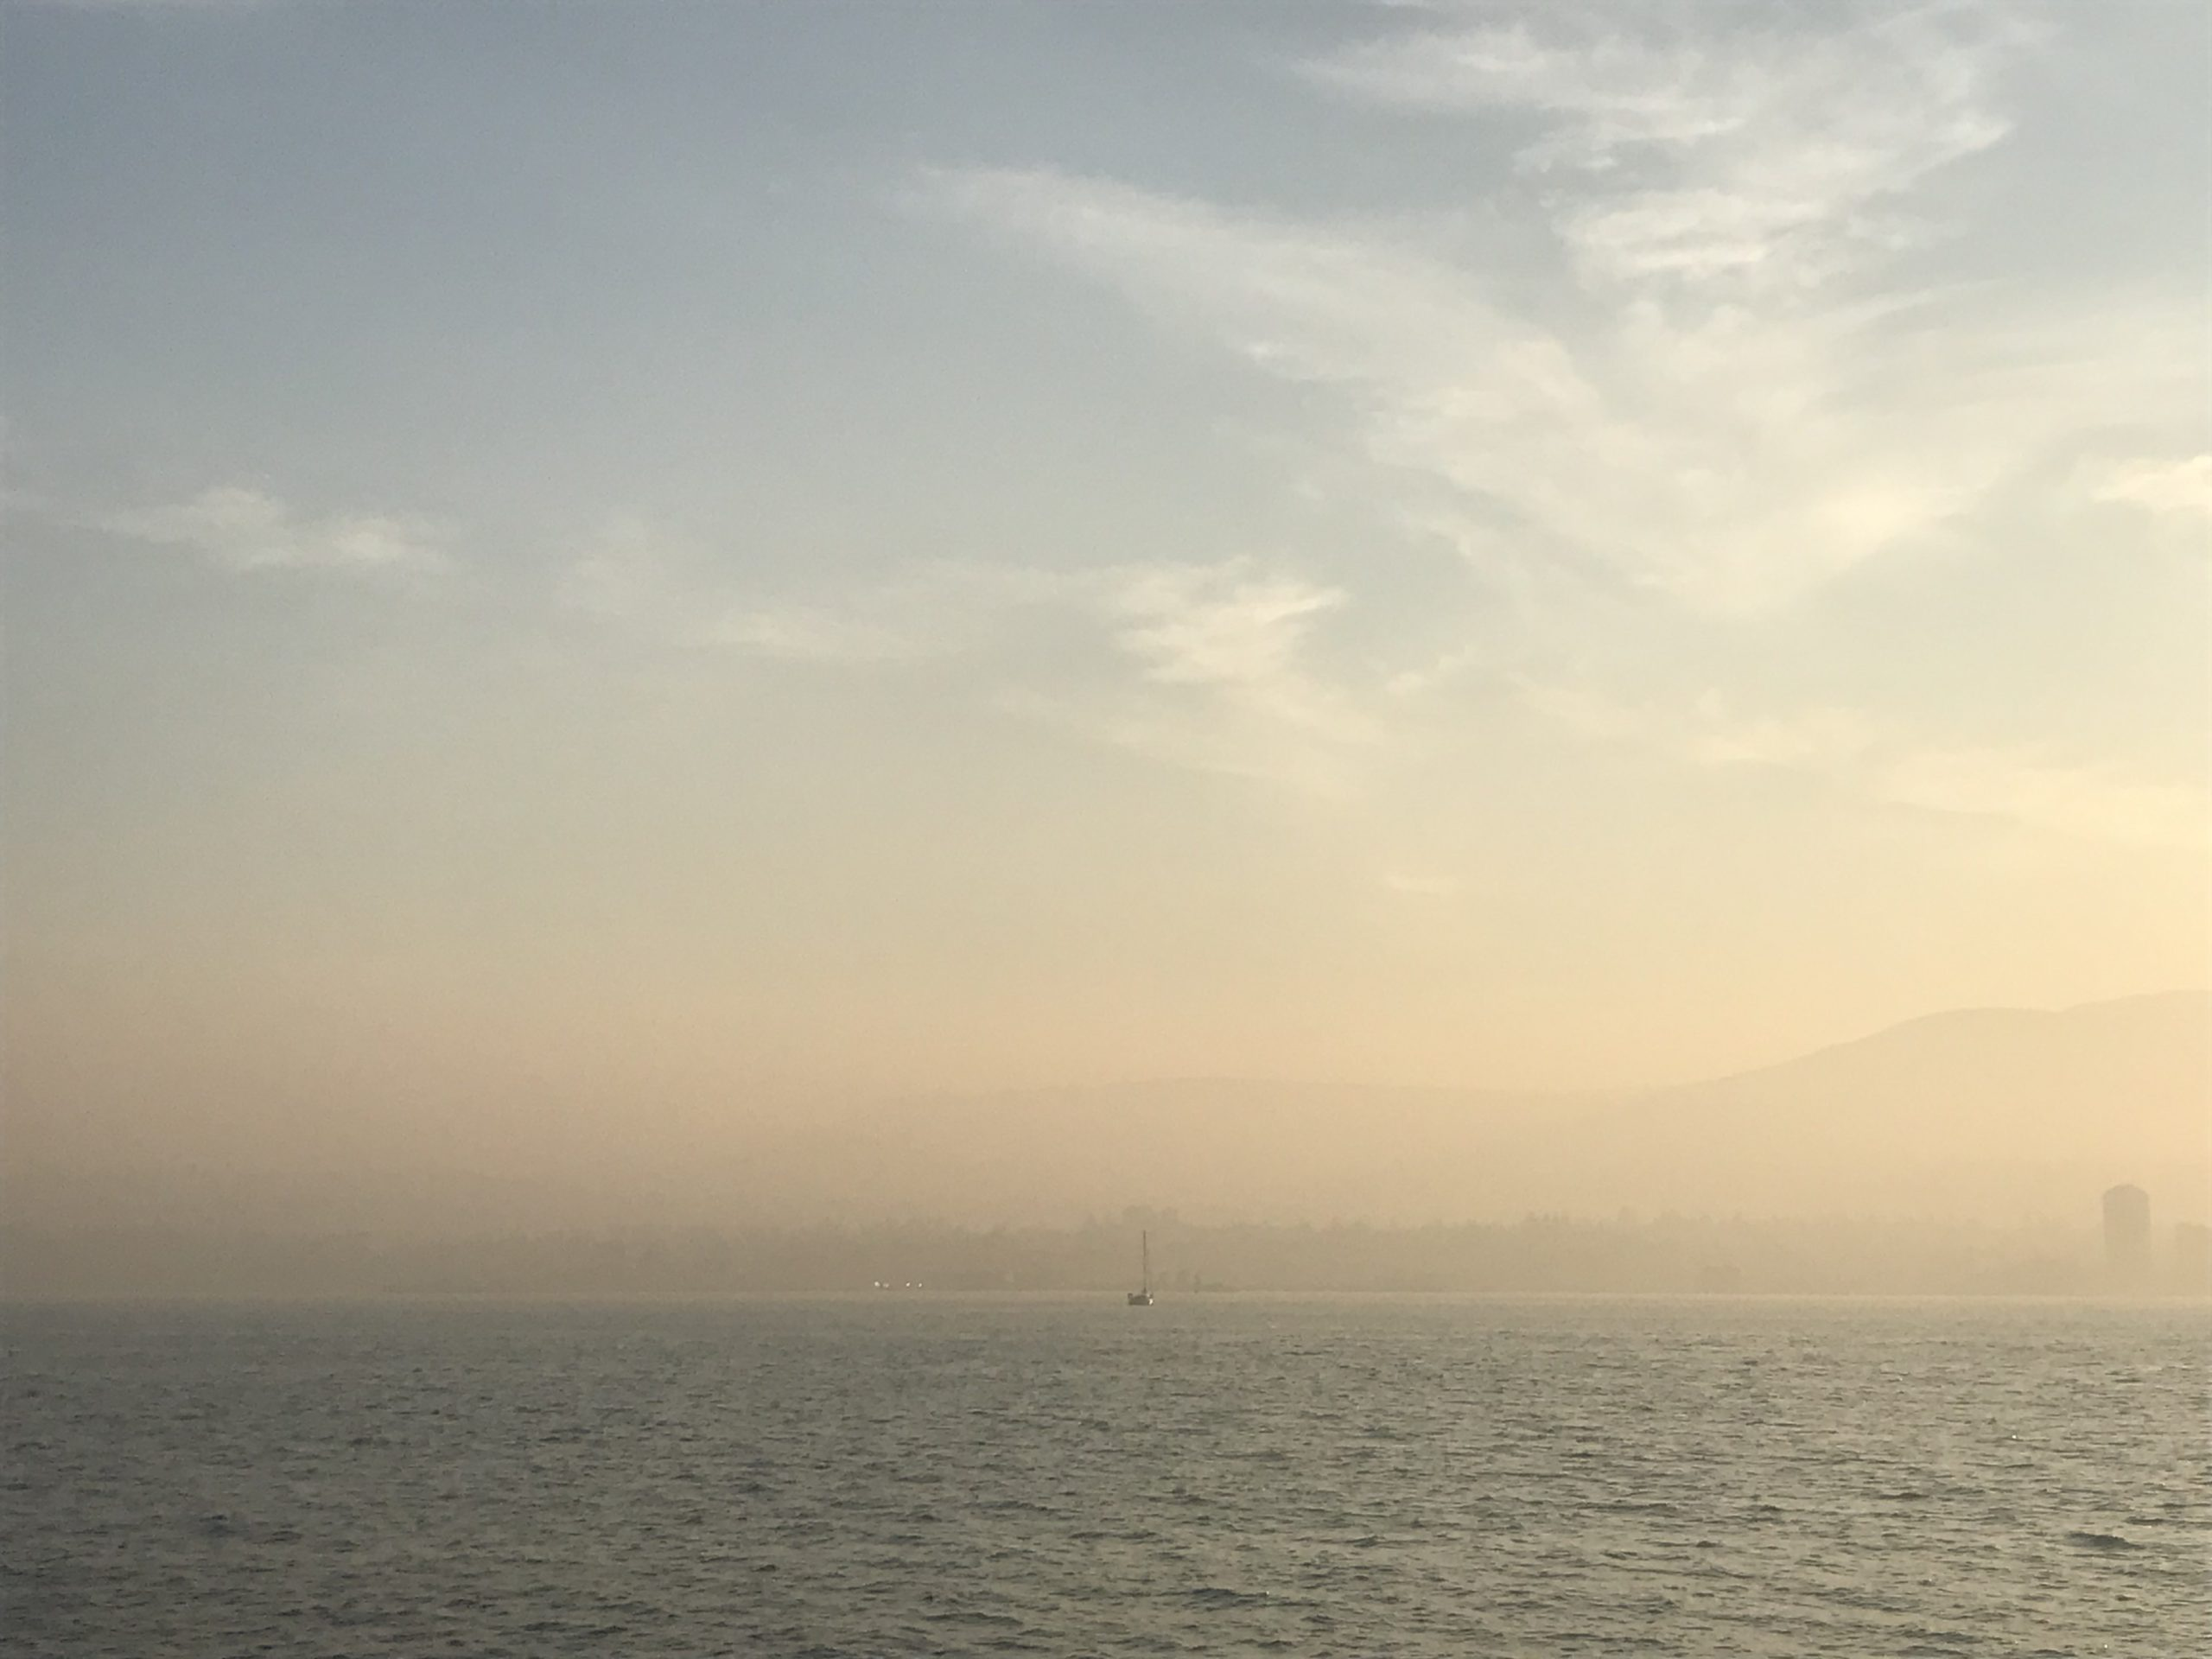 Wildfire smoke in Metro Vancouver expected to clear by Monday say meteorologists